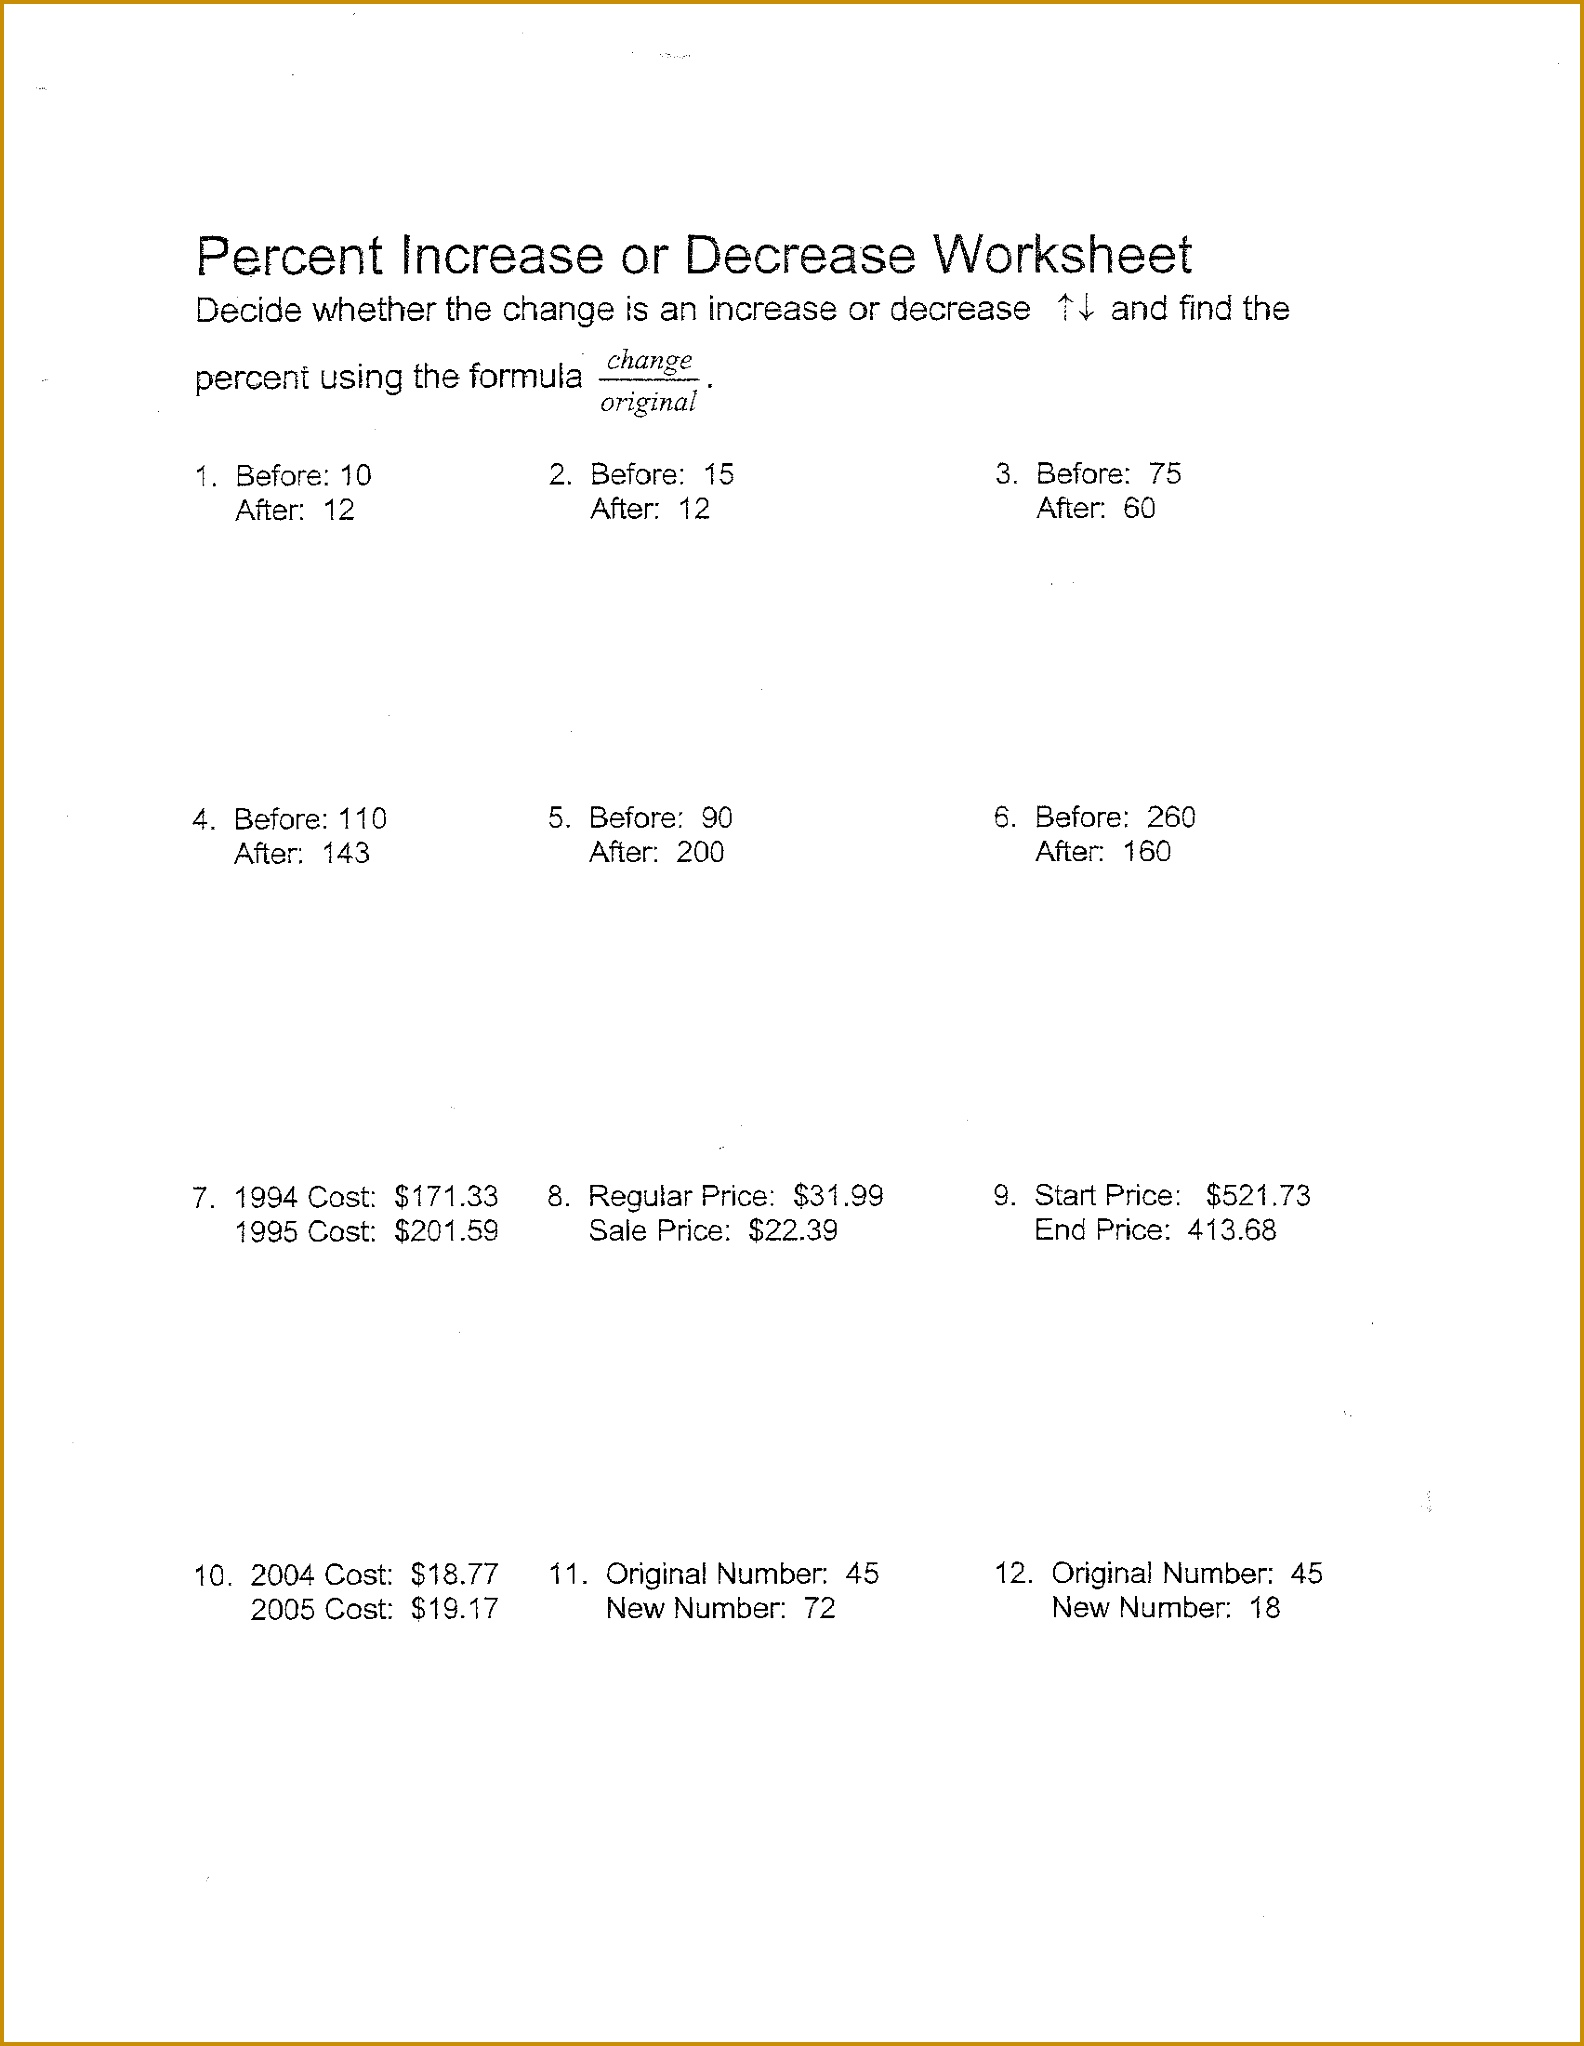 Percent Change Worksheet With Answers 20461584